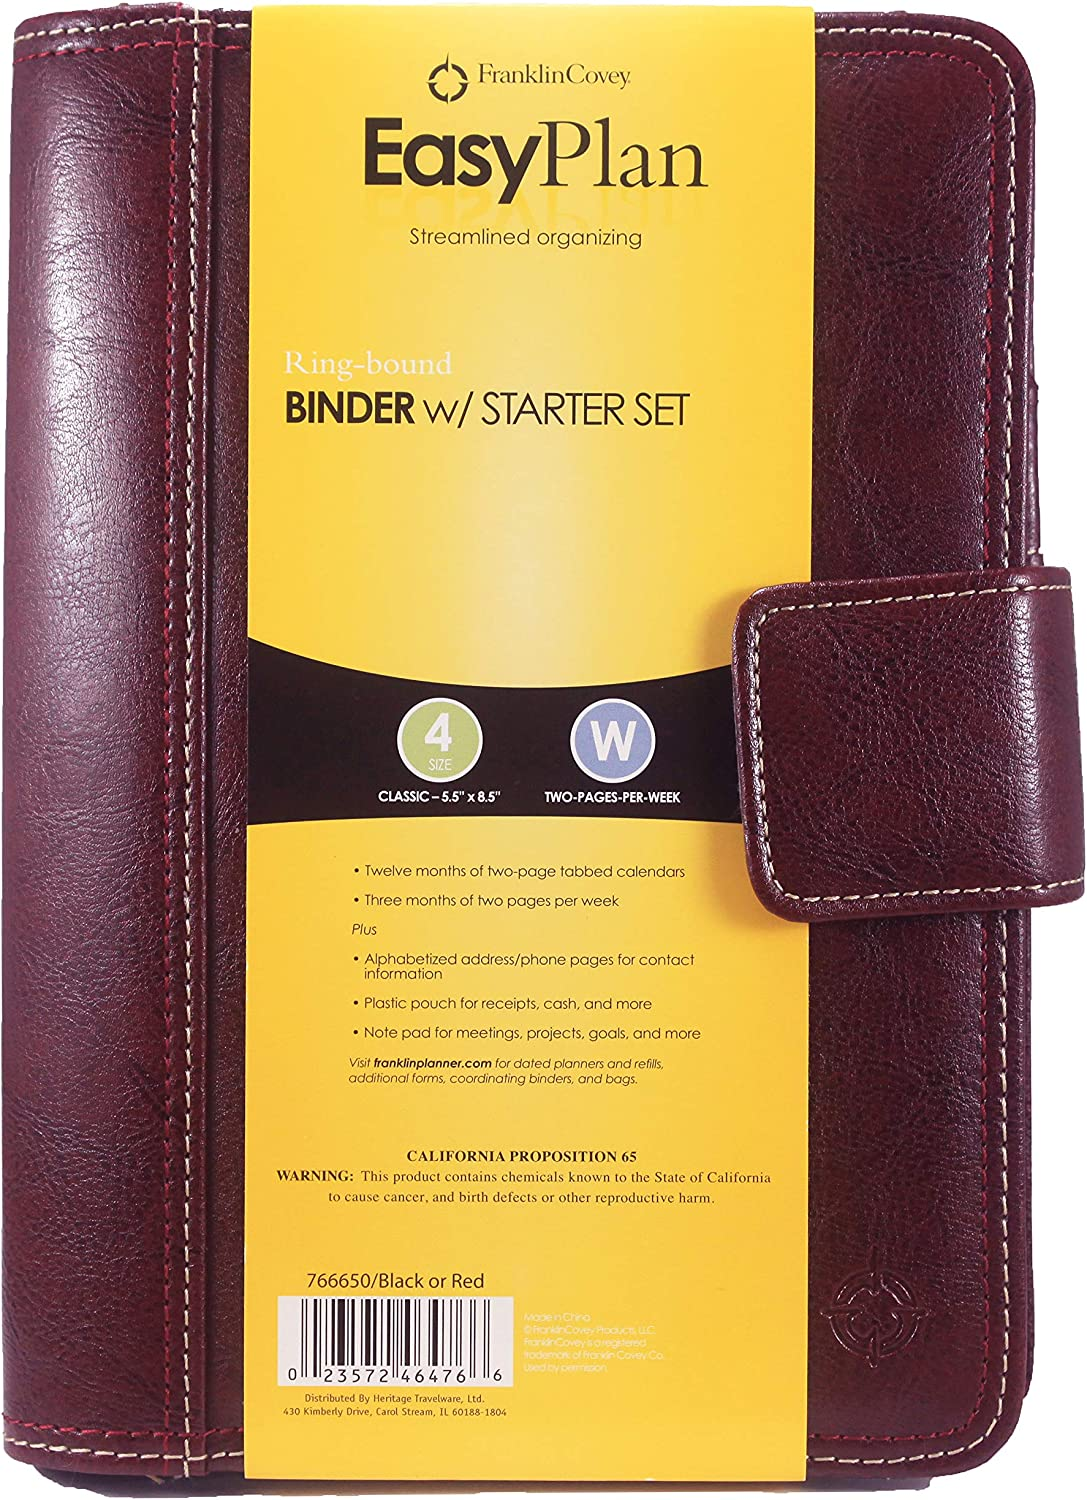 Franklin Covey Classic Leather Binder w// Starter Set 5.5 x 8.5 Two-Pages-Per-Week